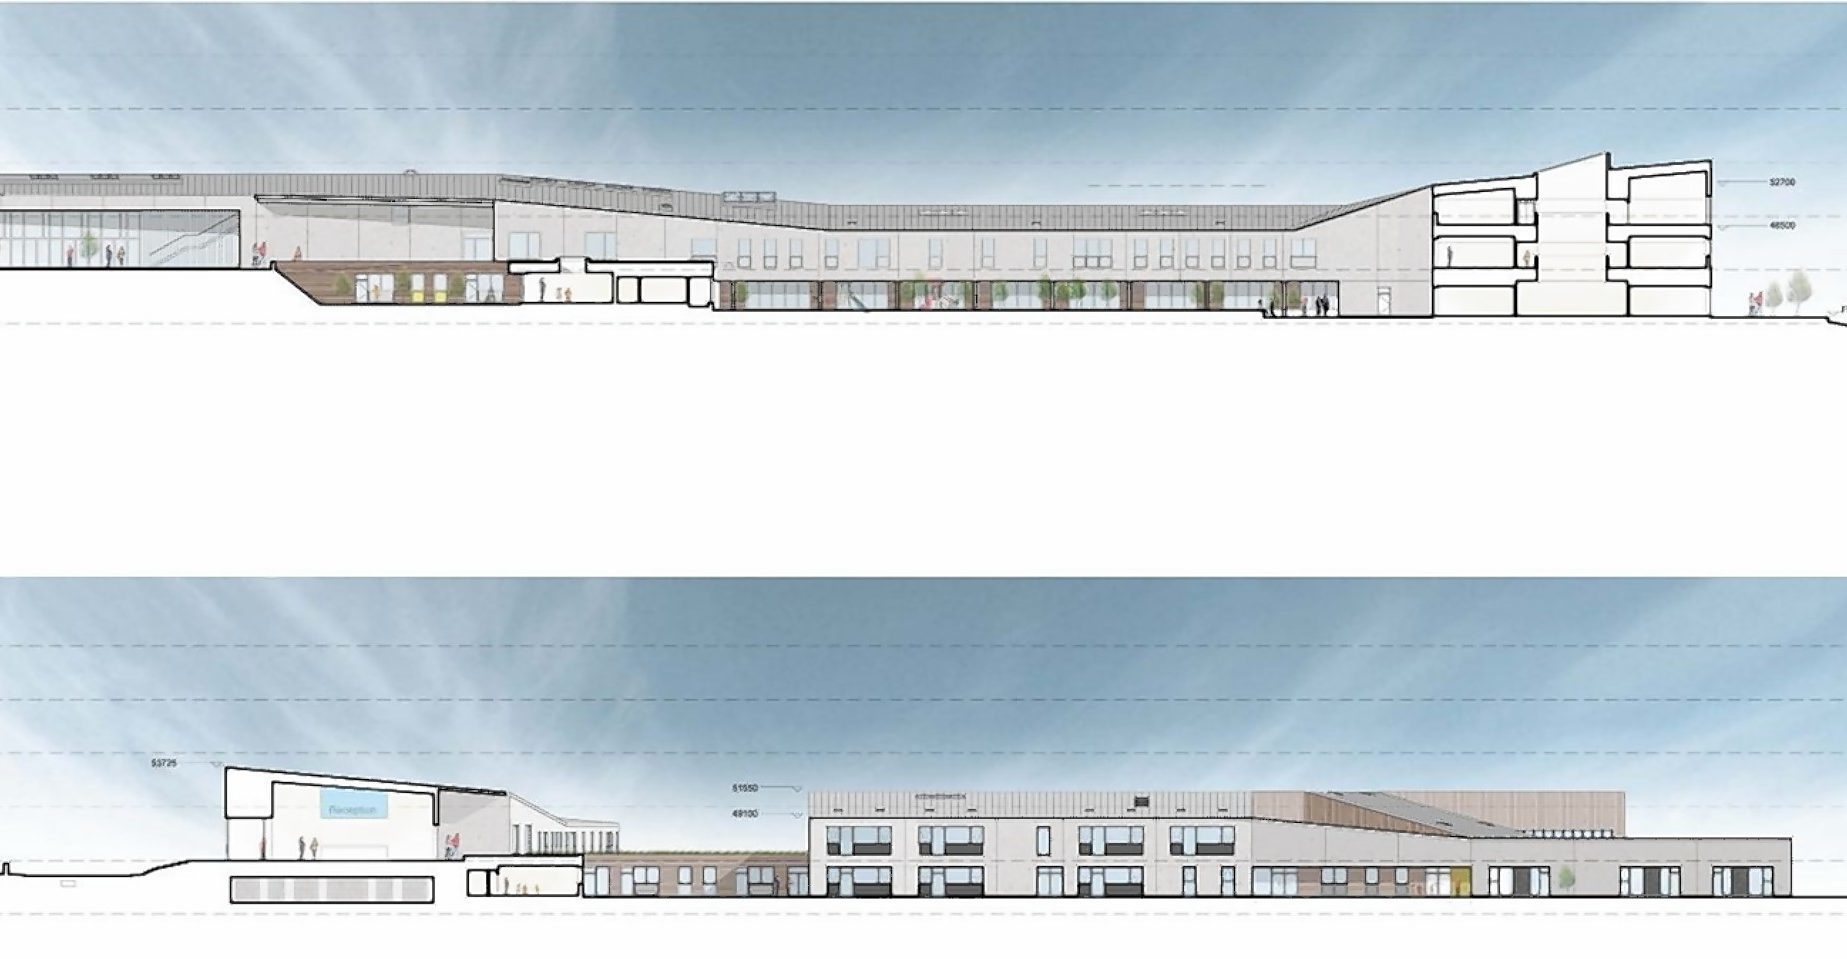 Plans for the new campus at Tain